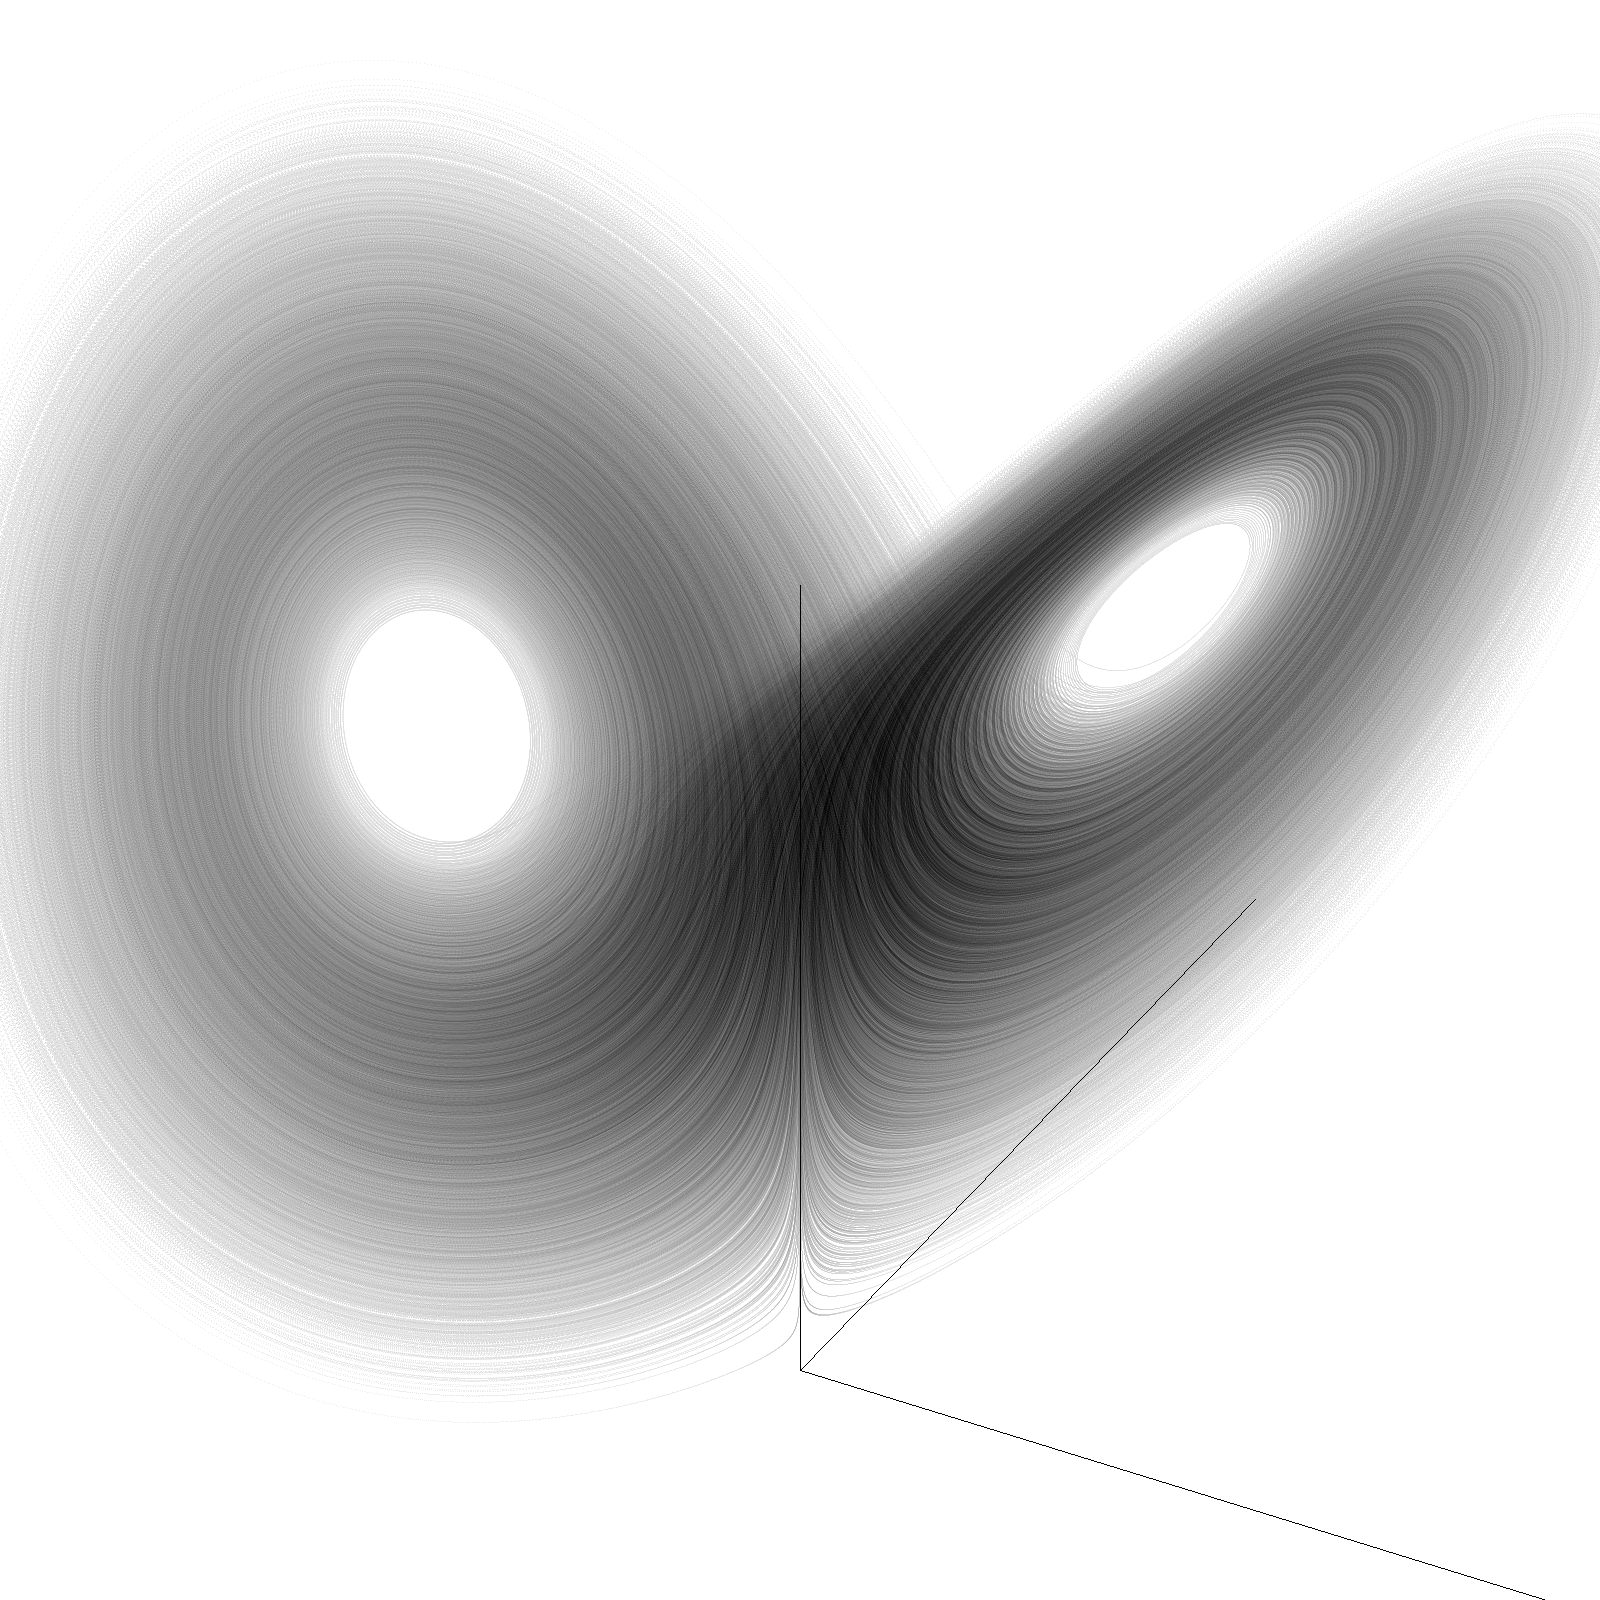 http://upload.wikimedia.org/wikipedia/commons/0/0e/Lorenz_attractor.png